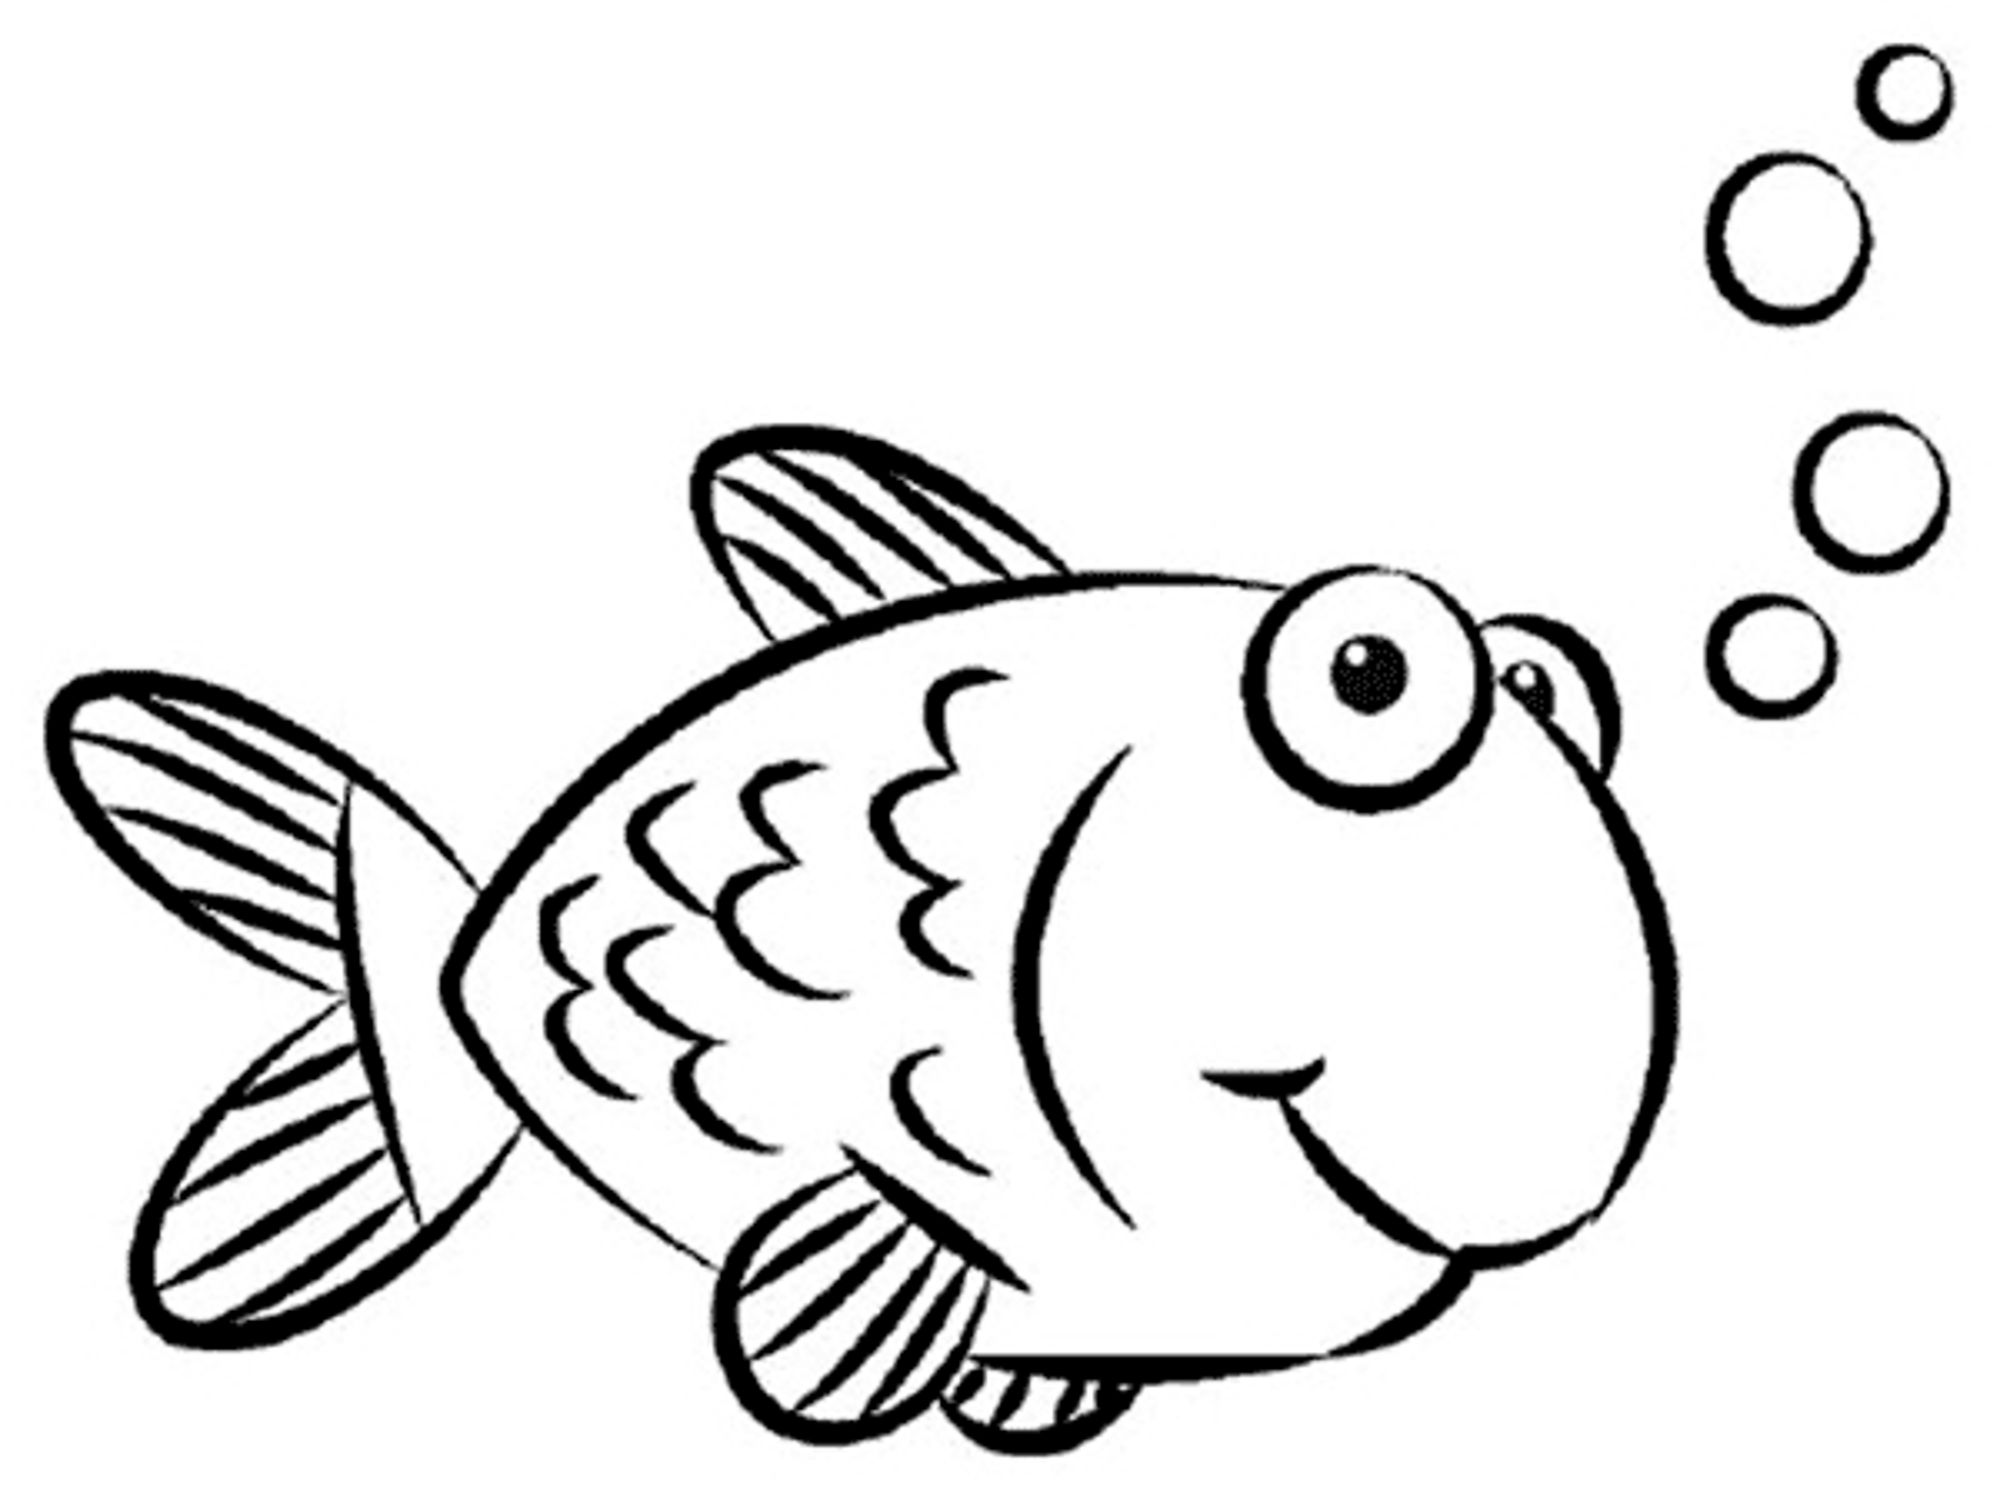 2000x1510 Fish Drawings For Kids How To Draw Fish Kids Step